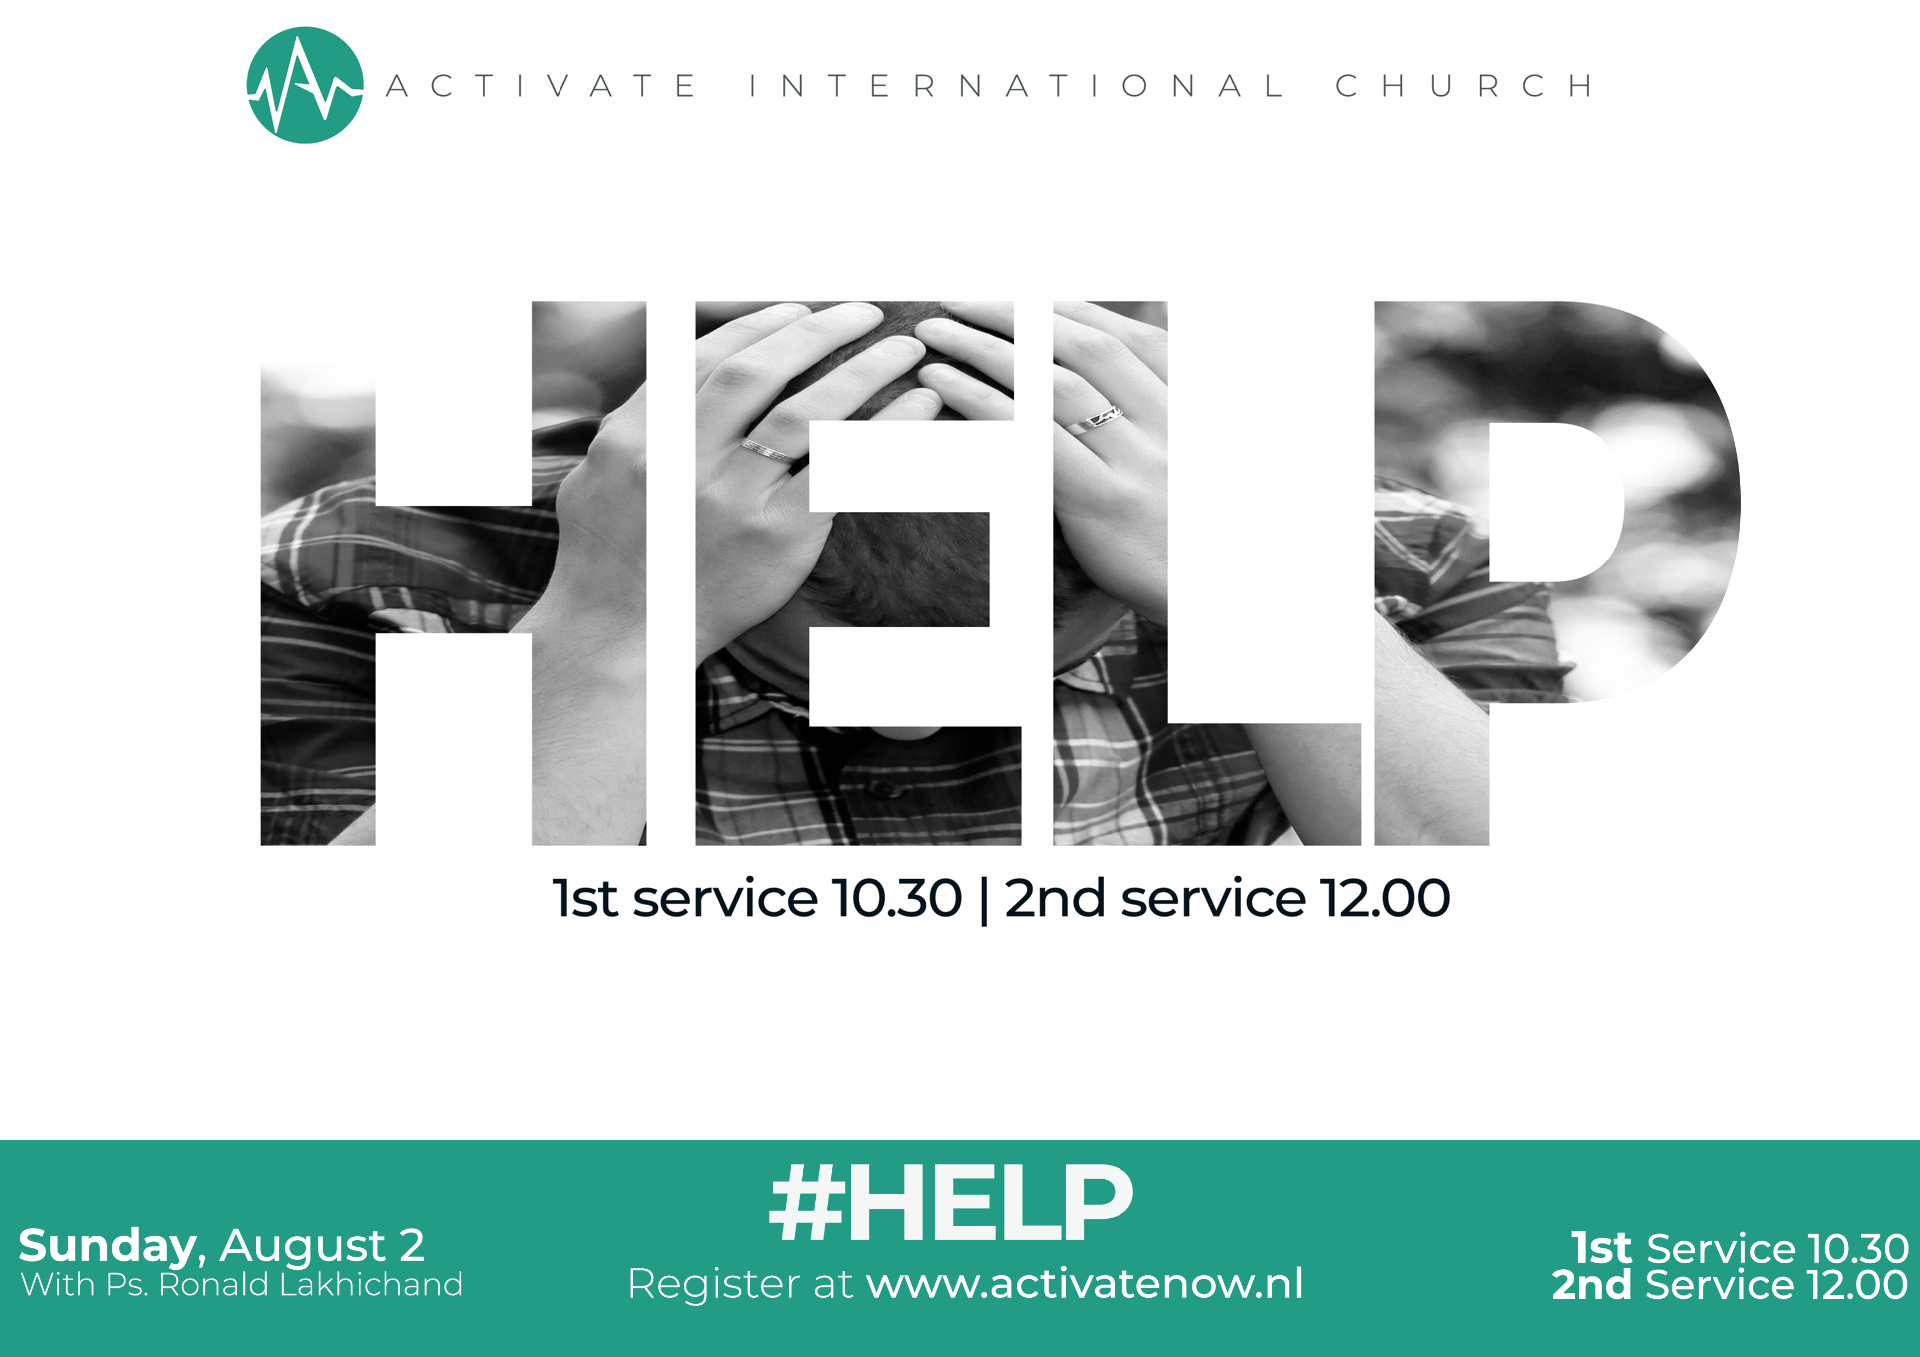 Services: 10.30 & 12.00